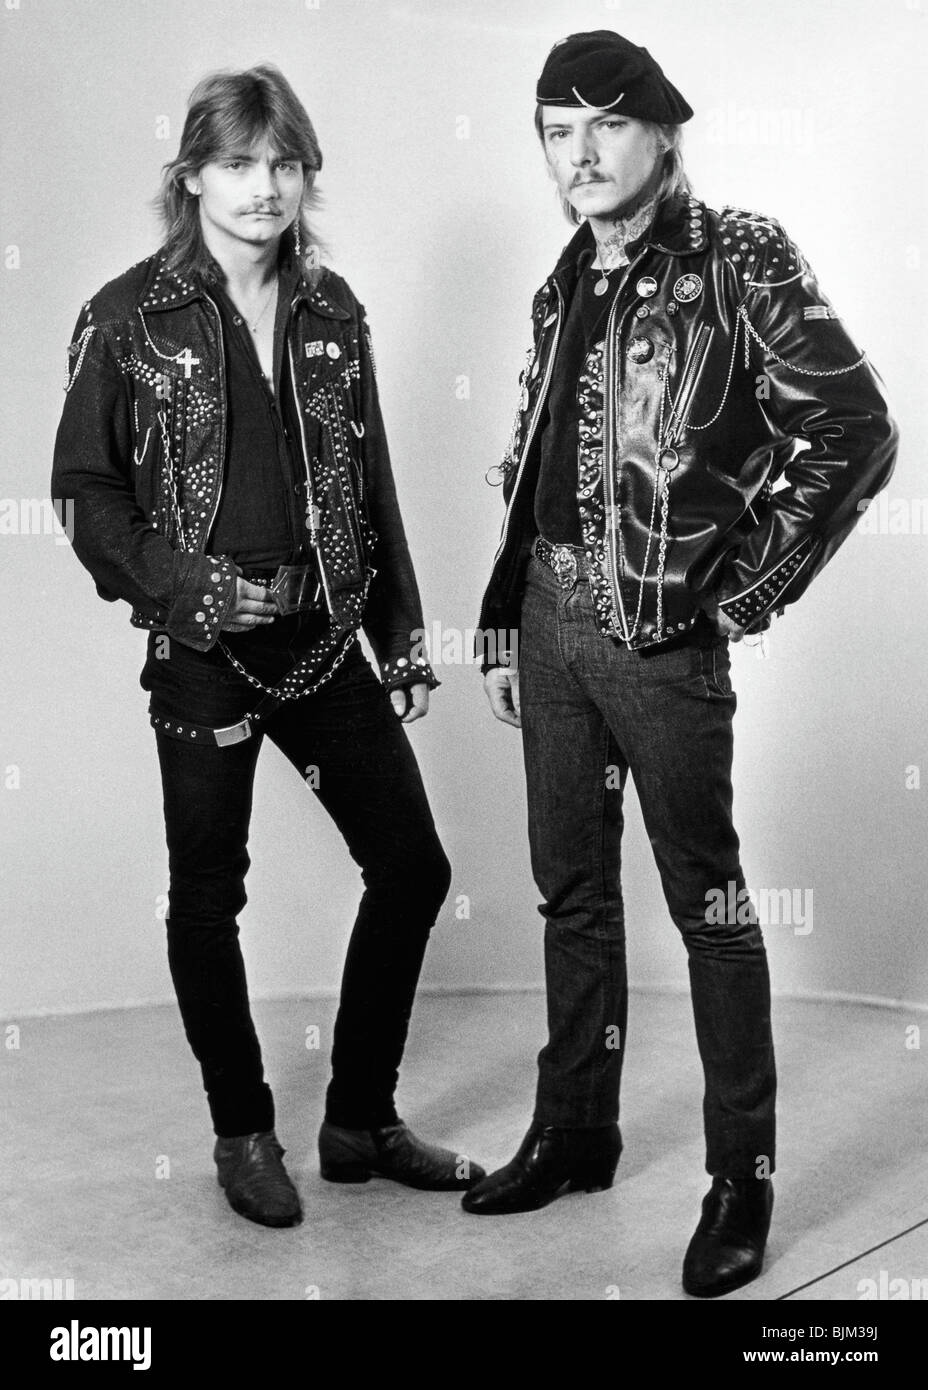 Leather jacket europe - Stock Photo Young People With Leather Jackets And Tattoos East Germany Europe Circa 1984